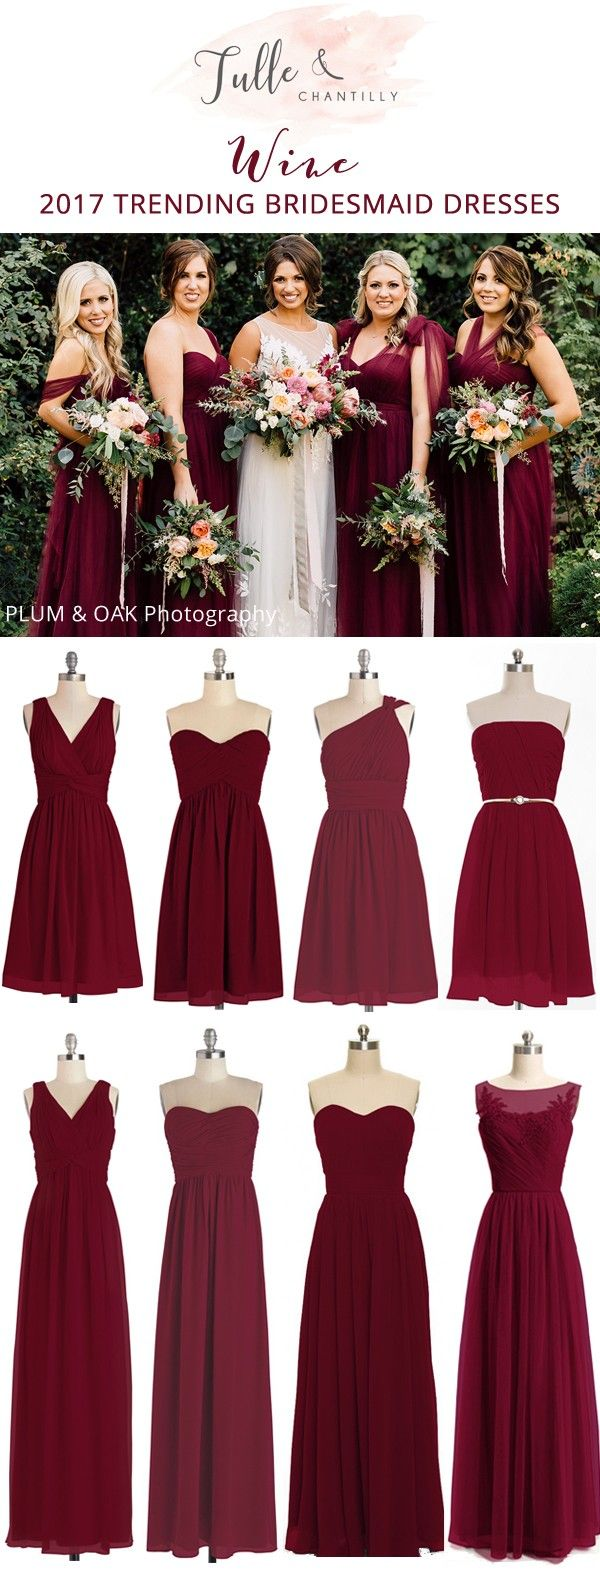 wine bridesmaid dresses for fall 2017